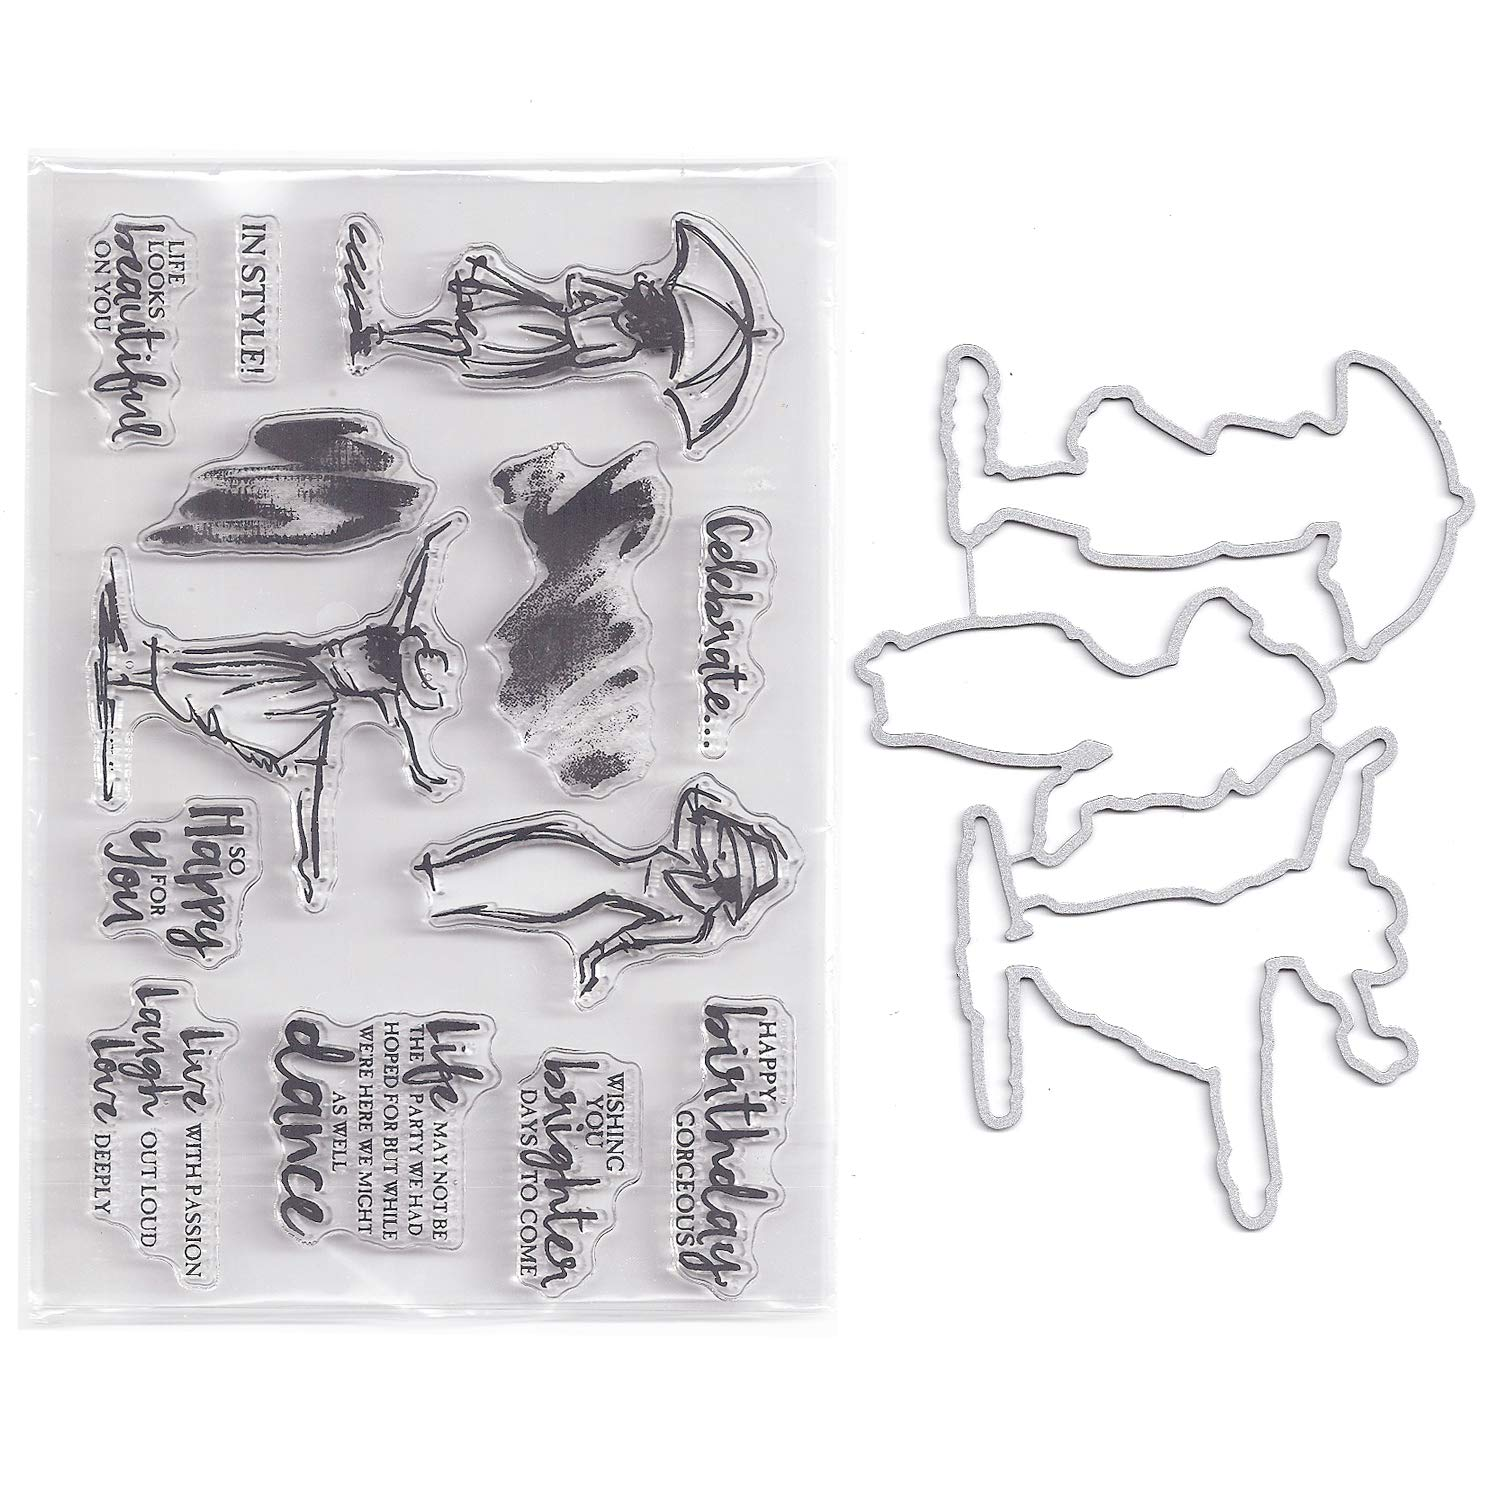 Bundle-2 Items-(1) Ea Clear Cling Stamp & Die Cut Set for Scrapbooking Card Making - Women and Umbrella Dies Stamp Stencil